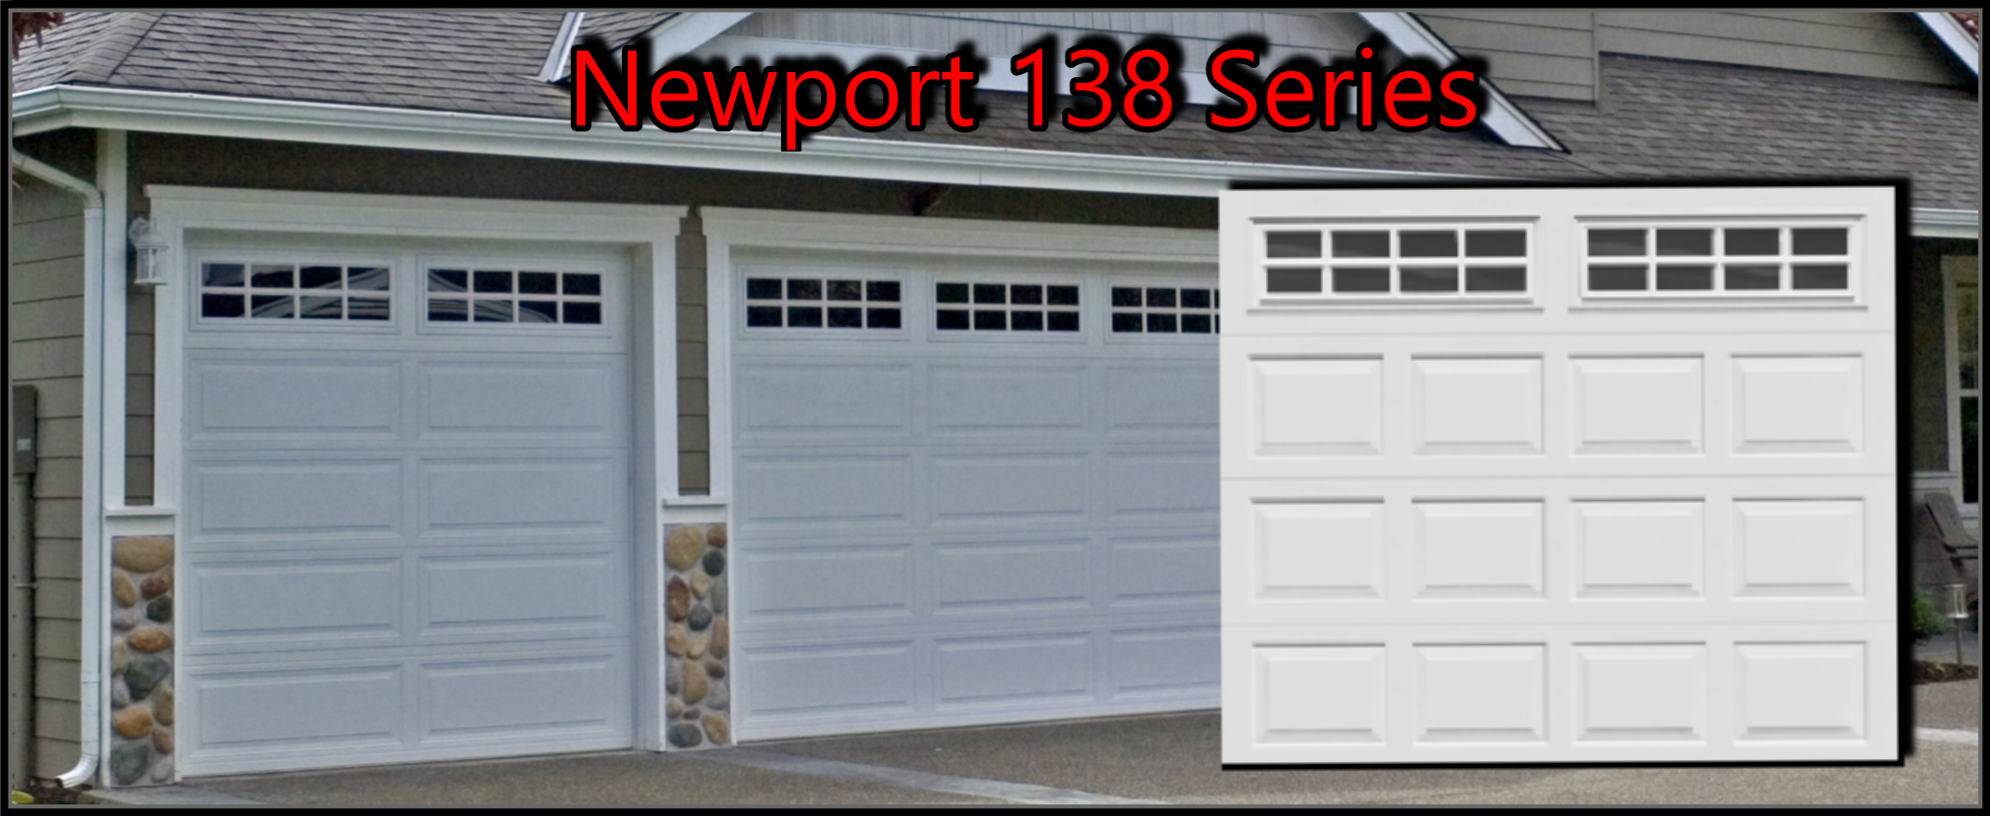 Newport 138 Garage Door